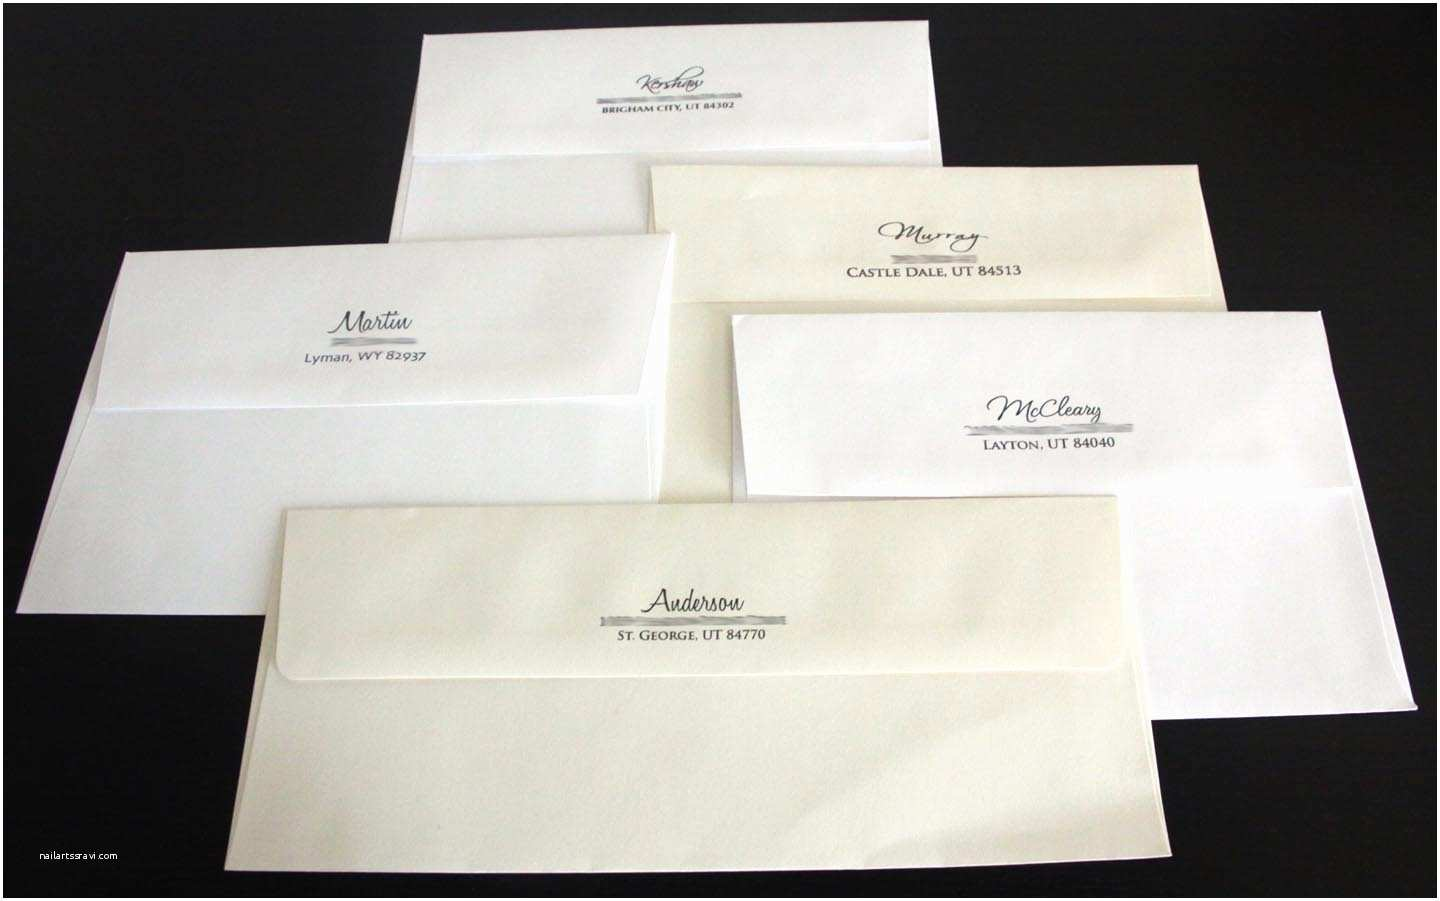 Printed Address Labels for Wedding Invitations Kara S Koncepts Graphic Design Custom Wedding